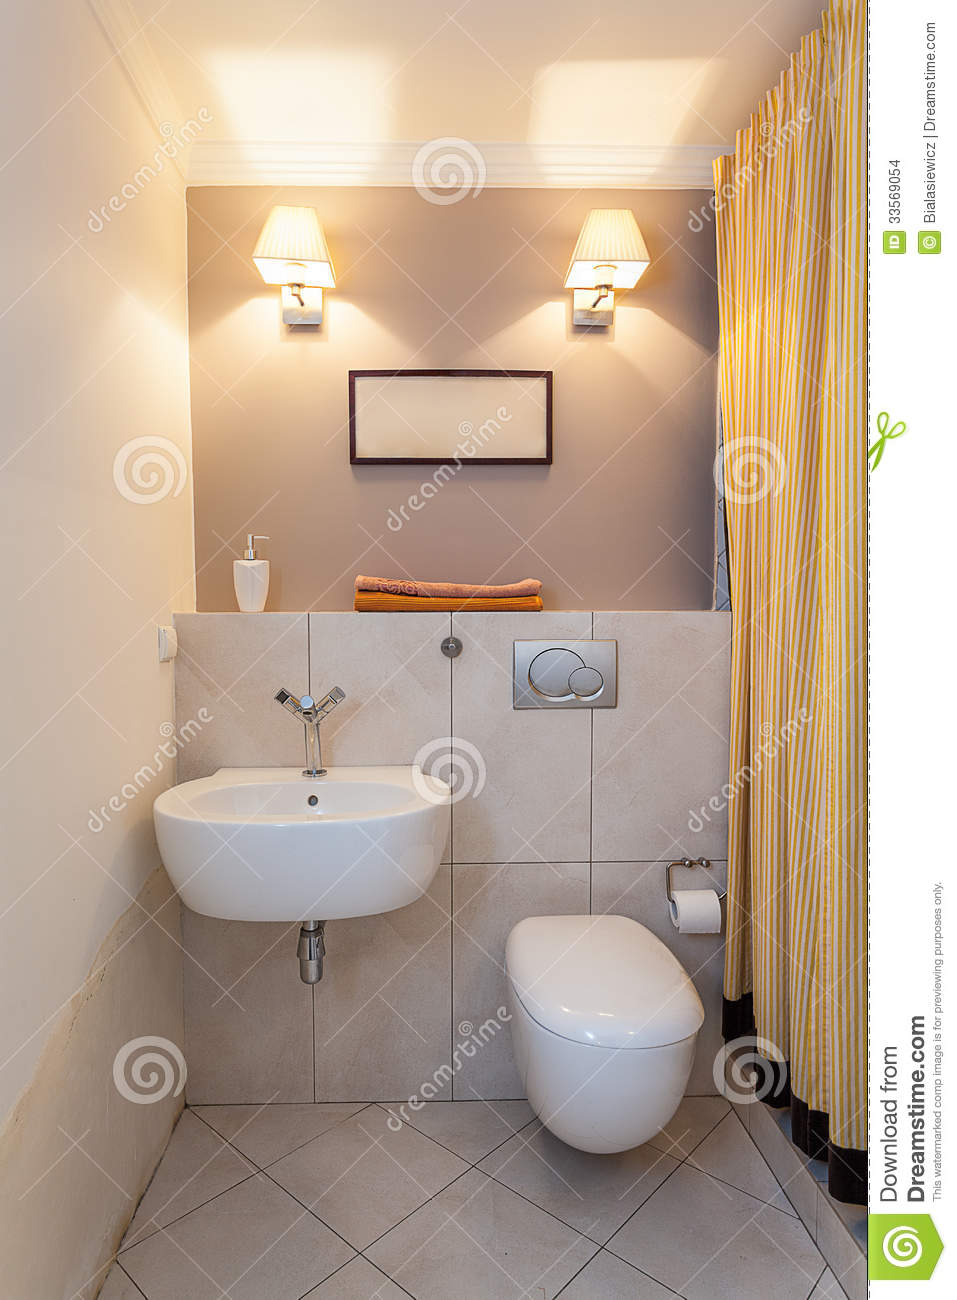 Sink bowl bathroom - Vintage Mansion Water Closet Stock Images Image 33569054